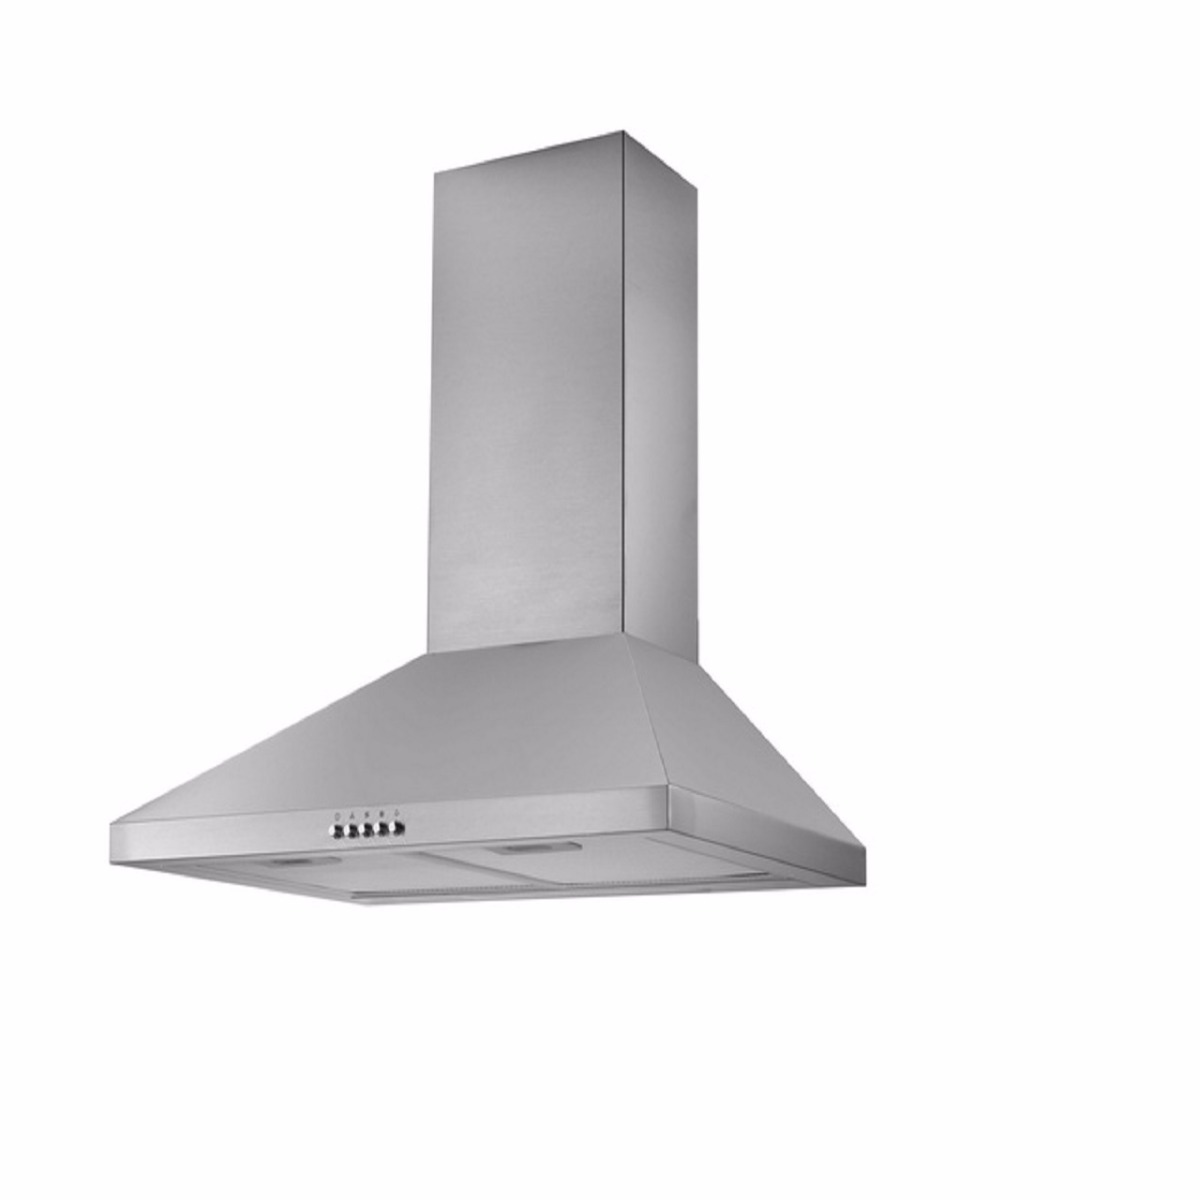 Stainless Steel Splashback Buy Cooker Hoods Splashbacks Online Soundstore